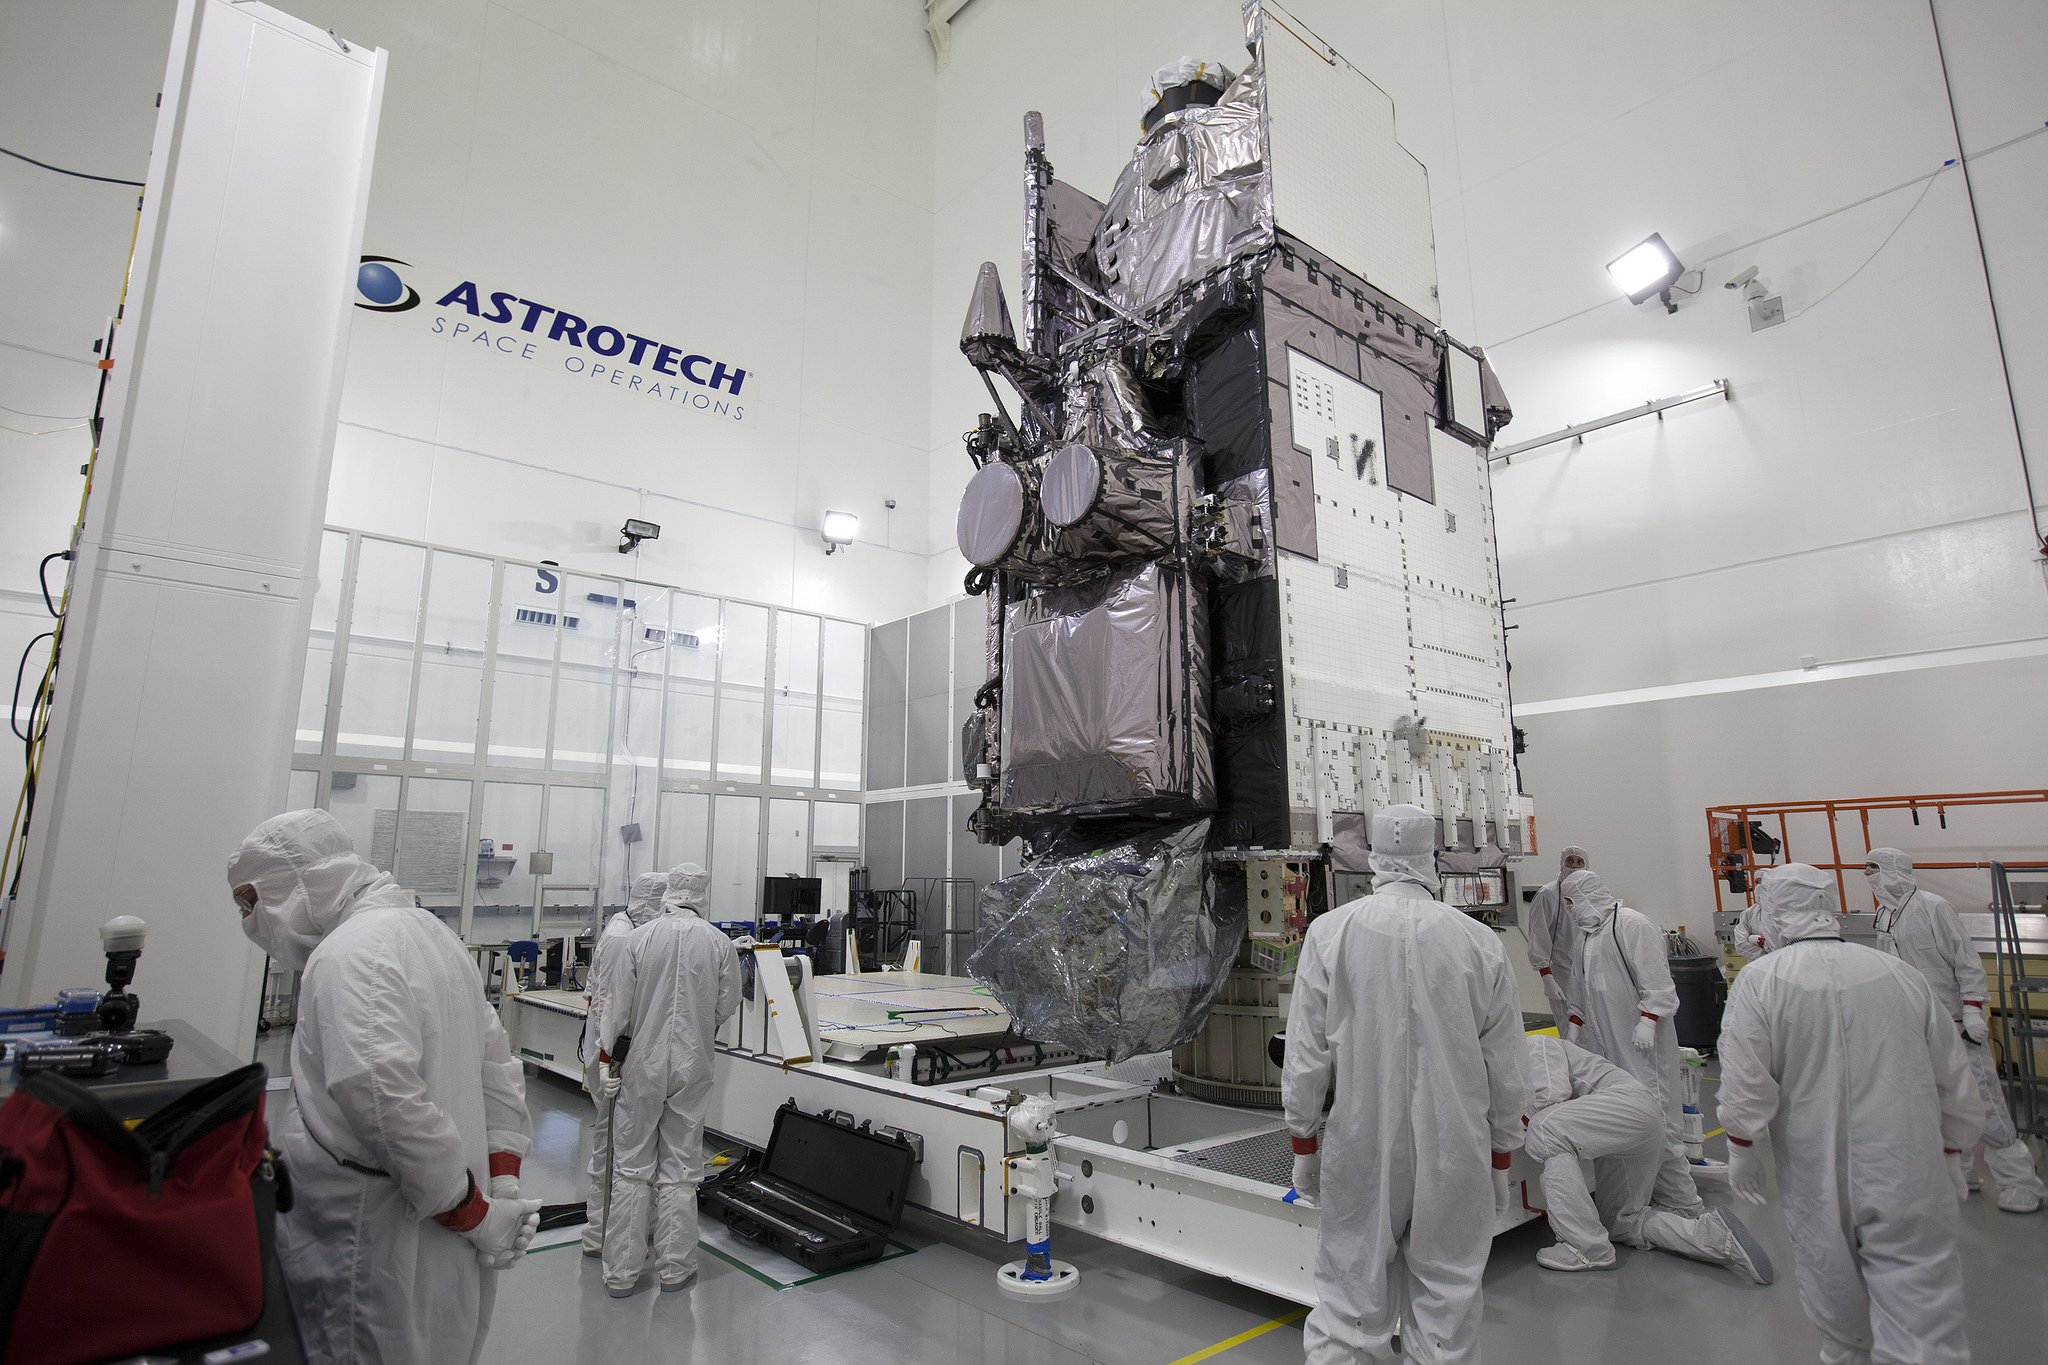 """Team members secure GOES-R in the vertical position on an """"up-ender"""" inside the Astrotech payload processing facility in Titusville, Fla., near NASA's Kennedy Space Center. GOES-R will be the first satellite in a series of next-generation NOAA GOES Satellites. (NASA/Charles Babir)"""